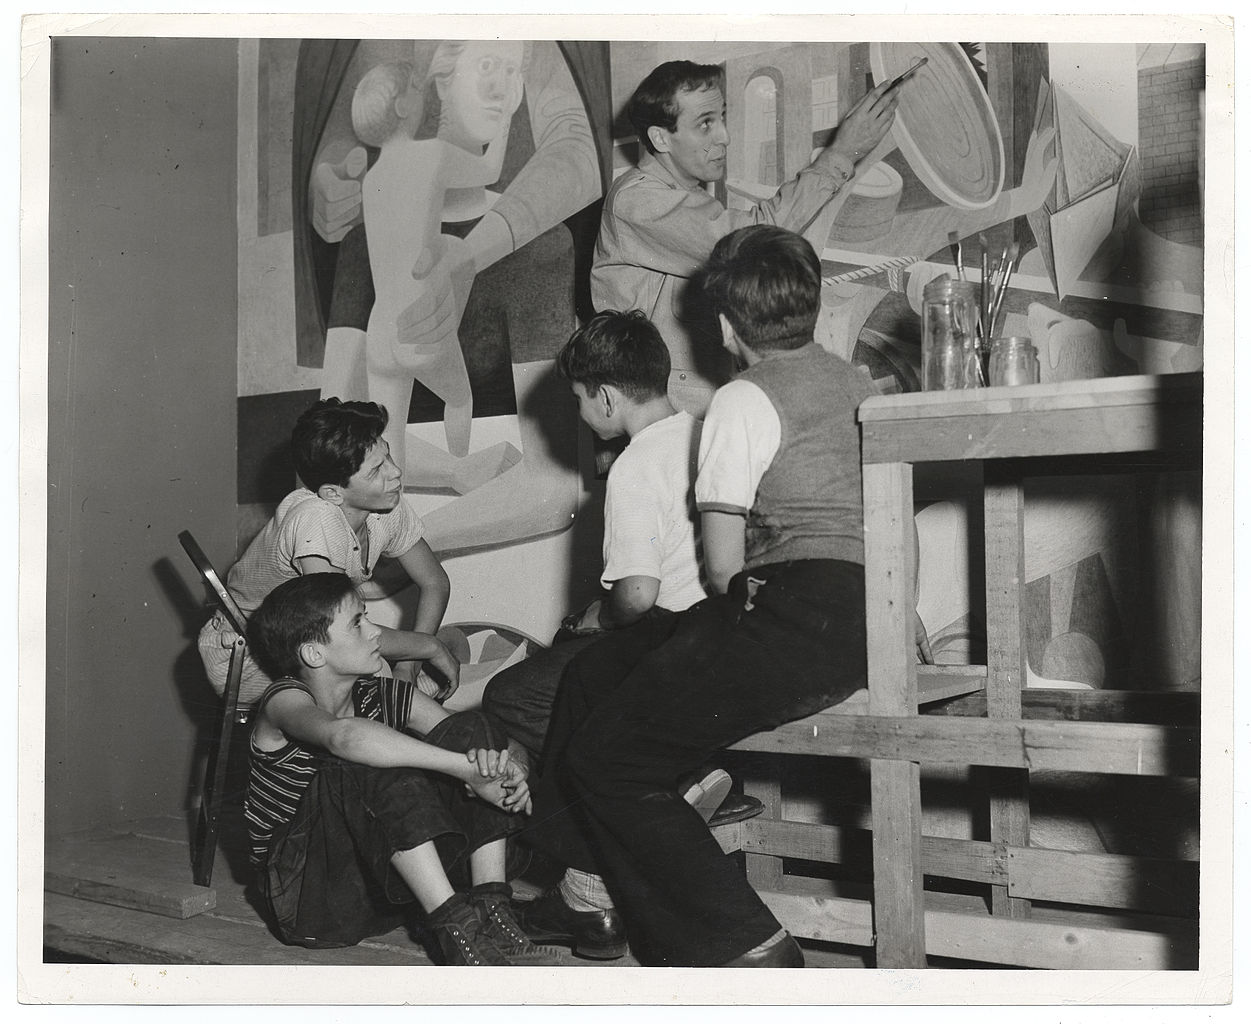 Philip Guston peinant devant un groupe d'enfants (Archives of American Art)